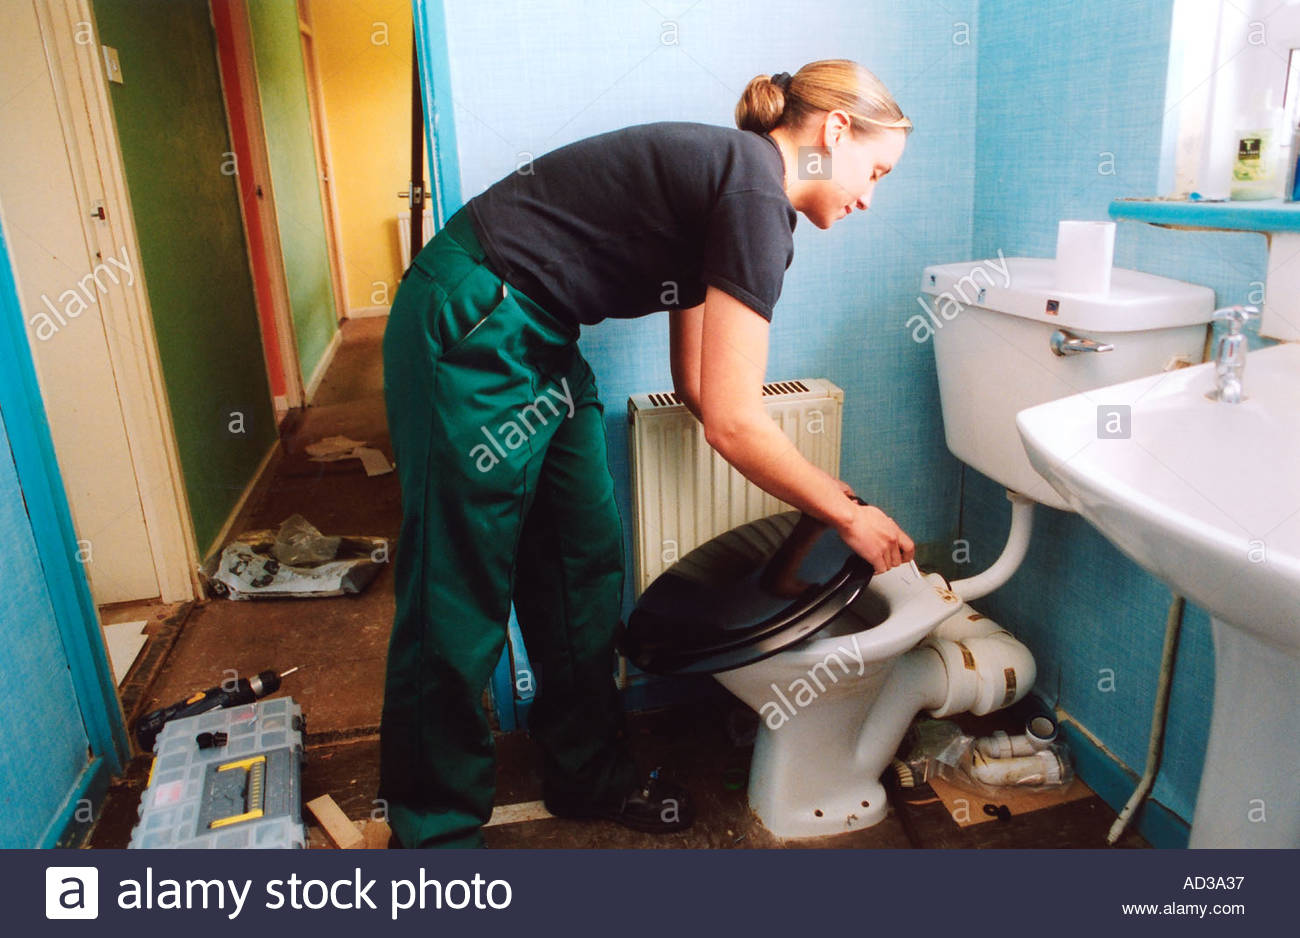 female-apprentice-plumber-on-the-job-training-blackburn-lancs-uk-AD3A37.jpg